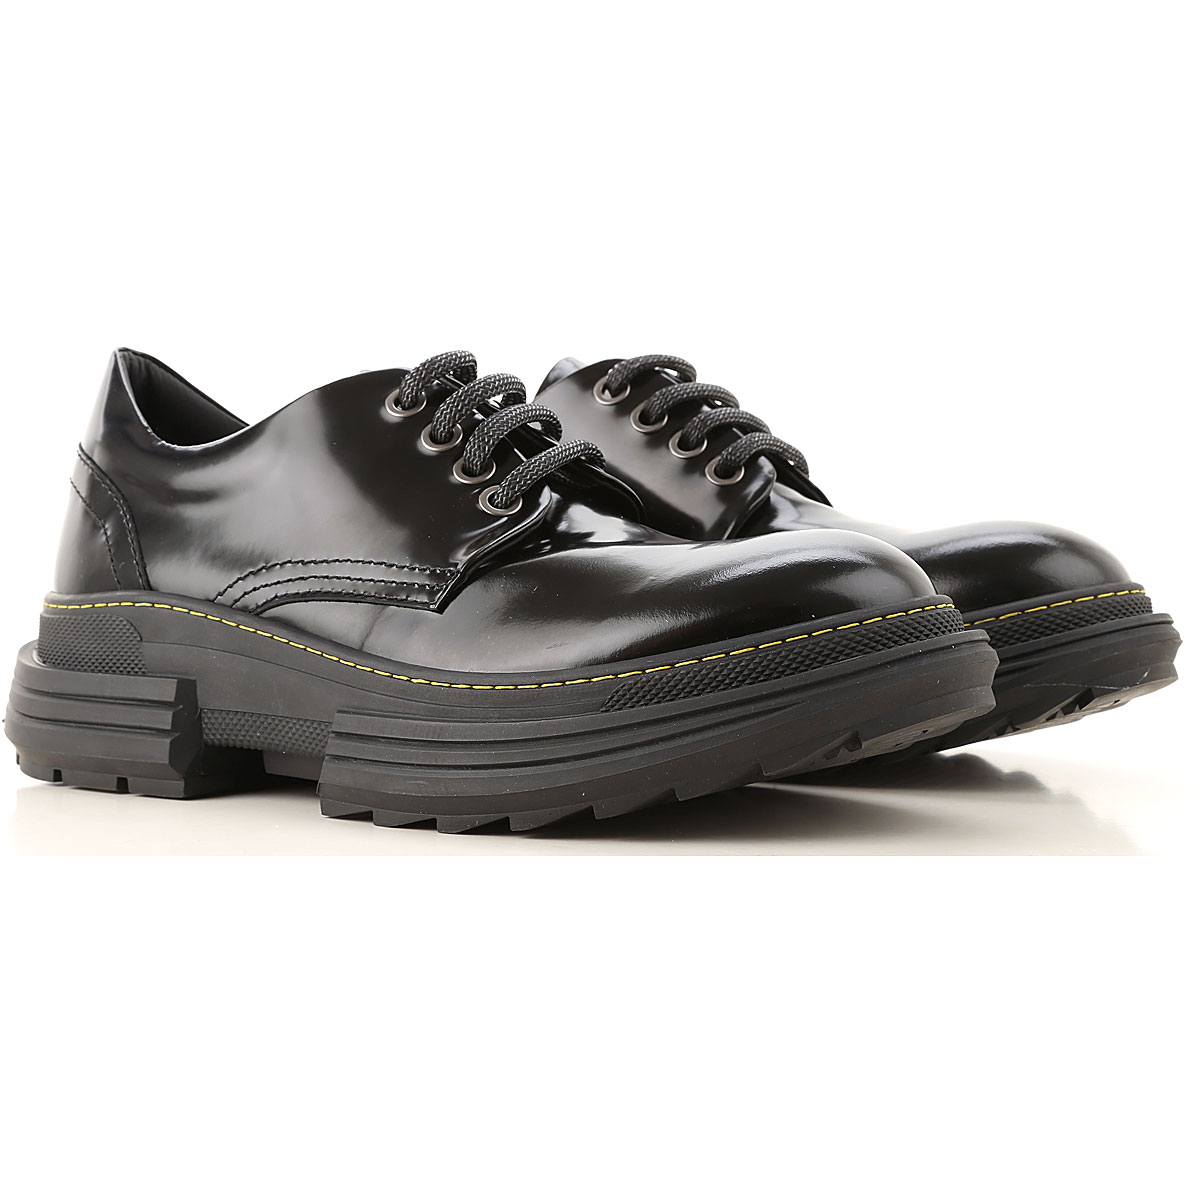 Beyond Lace Up Shoes for Men Oxfords, Derbies and Brogues, Black, Patent Leather, 2019, 10 11.5 7.5 9